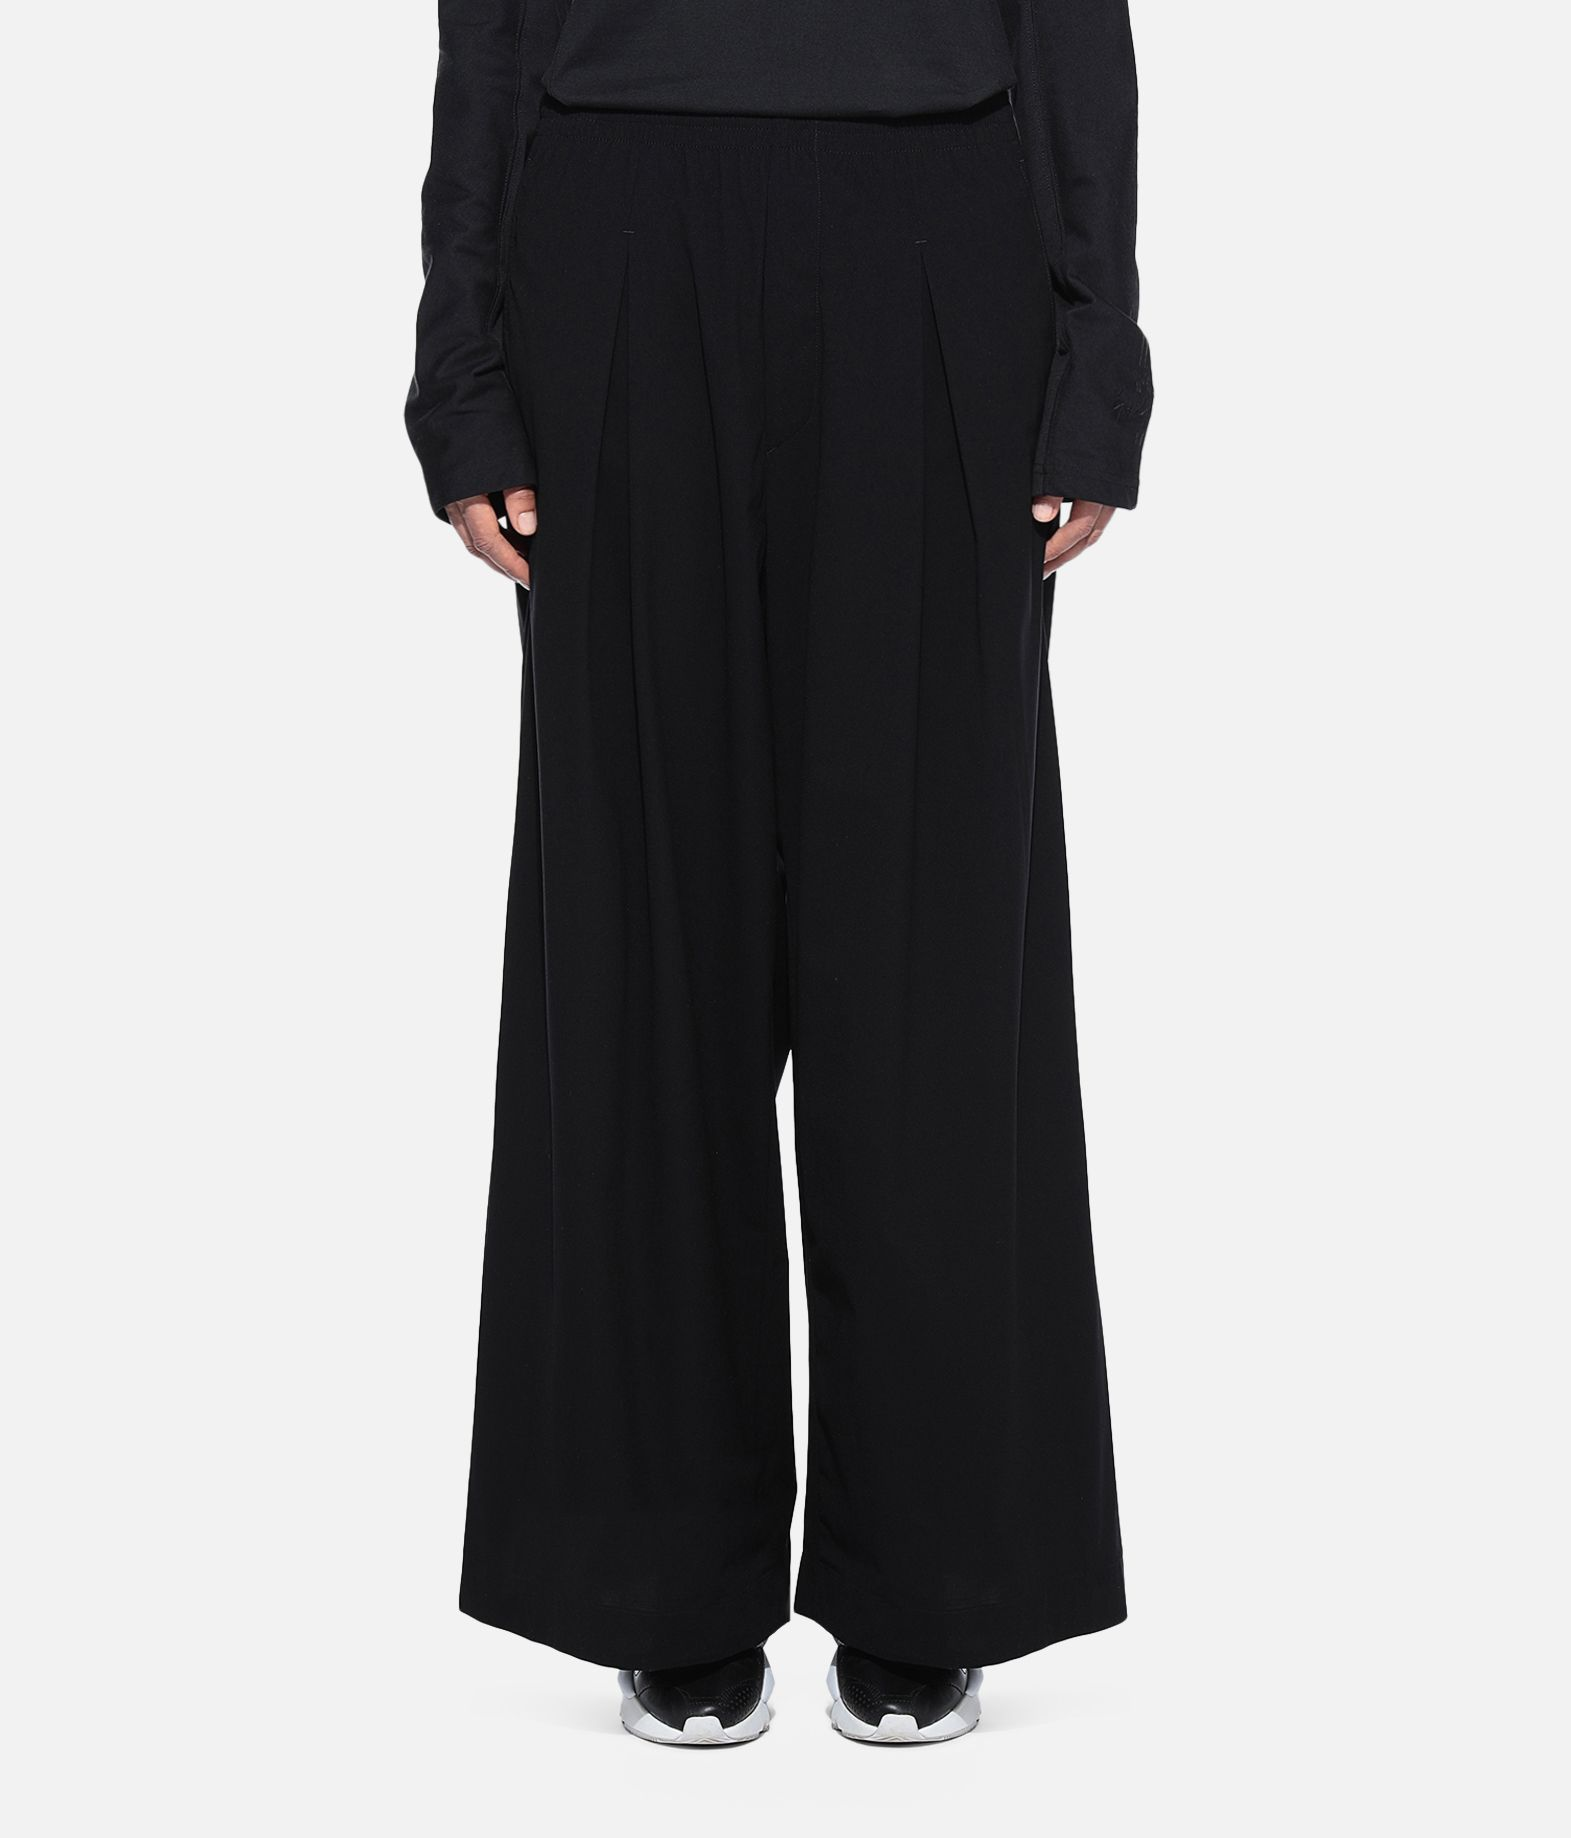 Y-3 Y-3 Light Wide Pants Casual pants Woman d